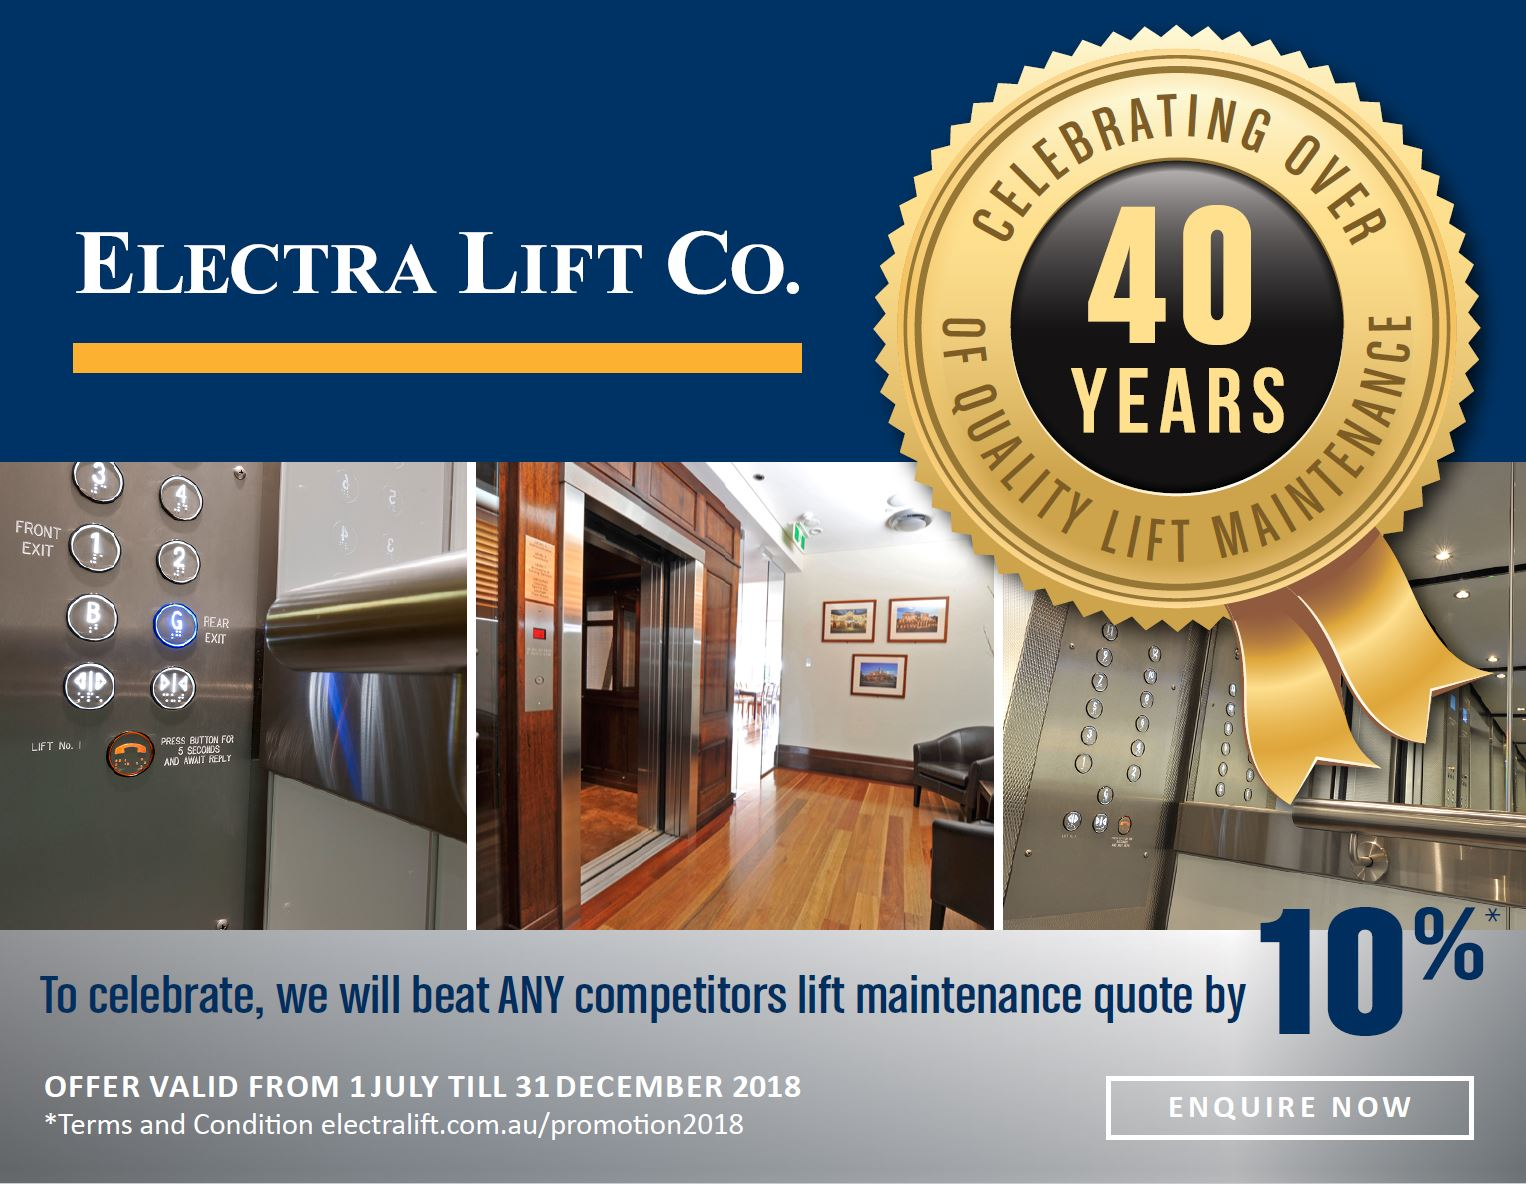 Electra Lift Promotion 2018